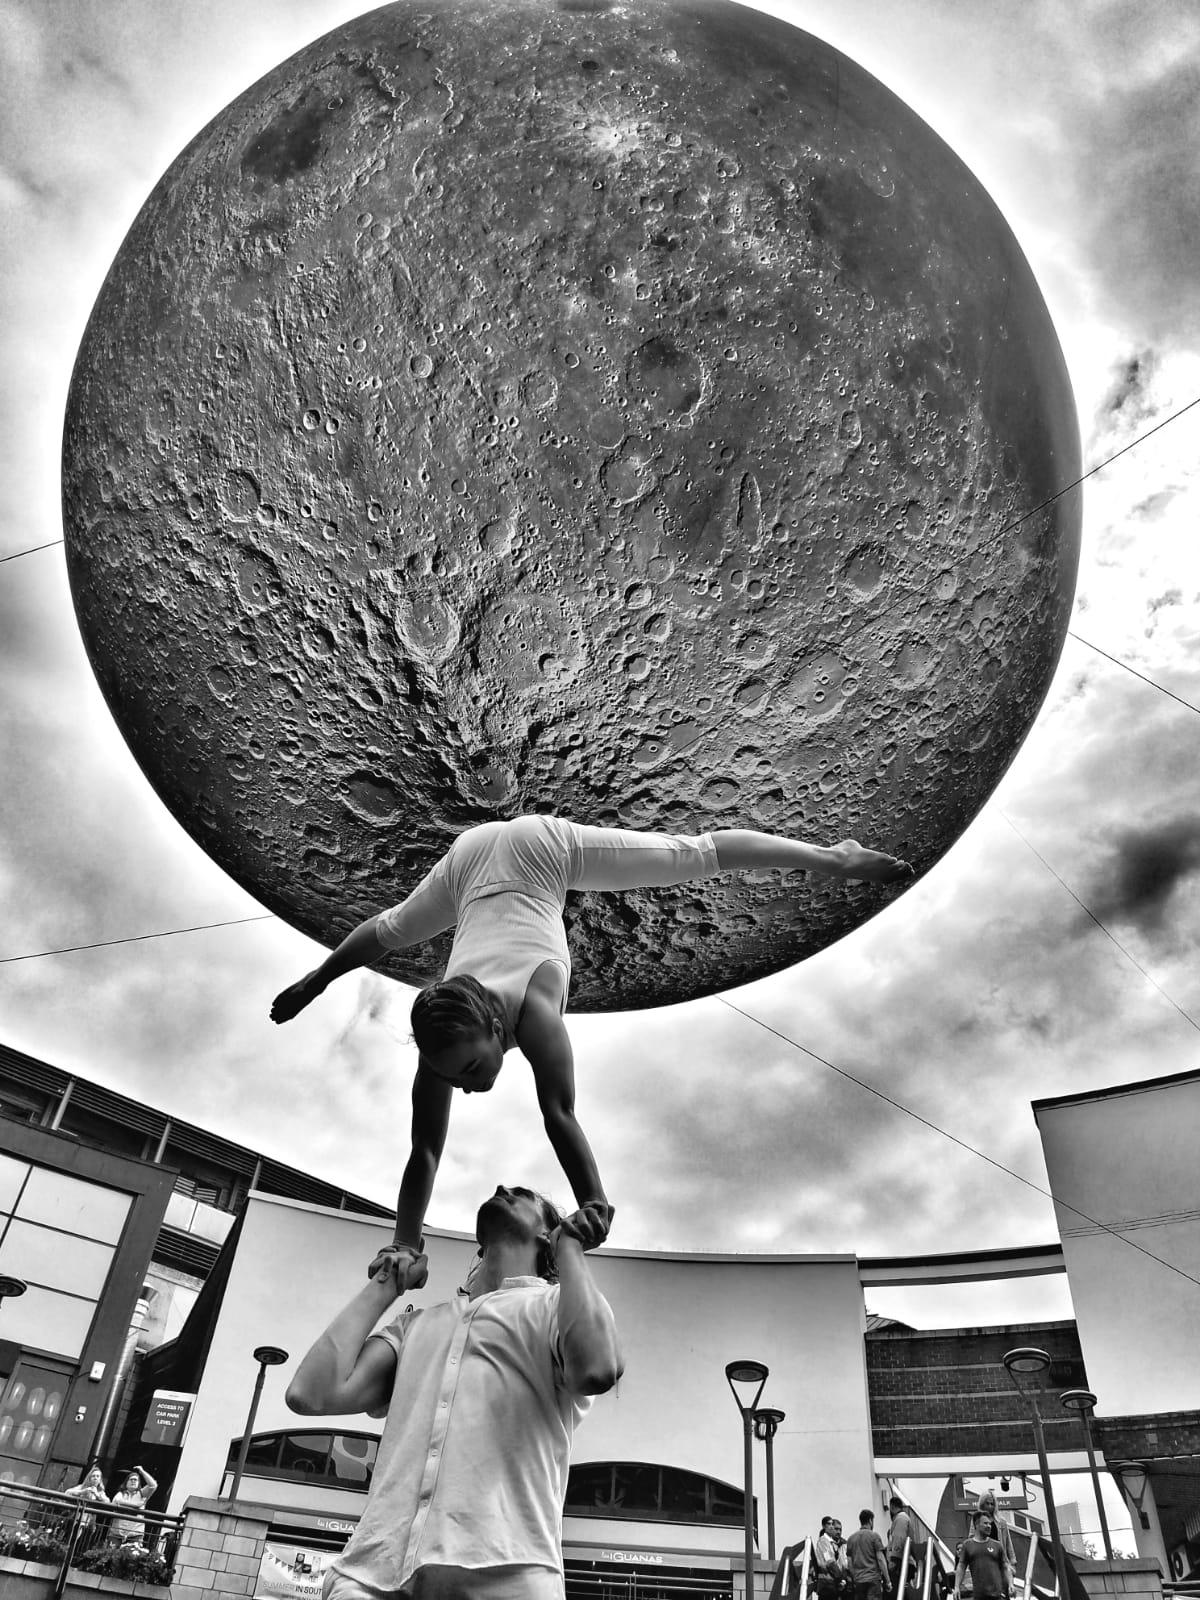 Chris and Berta performing a lift in front of the Museum of the Moon installation